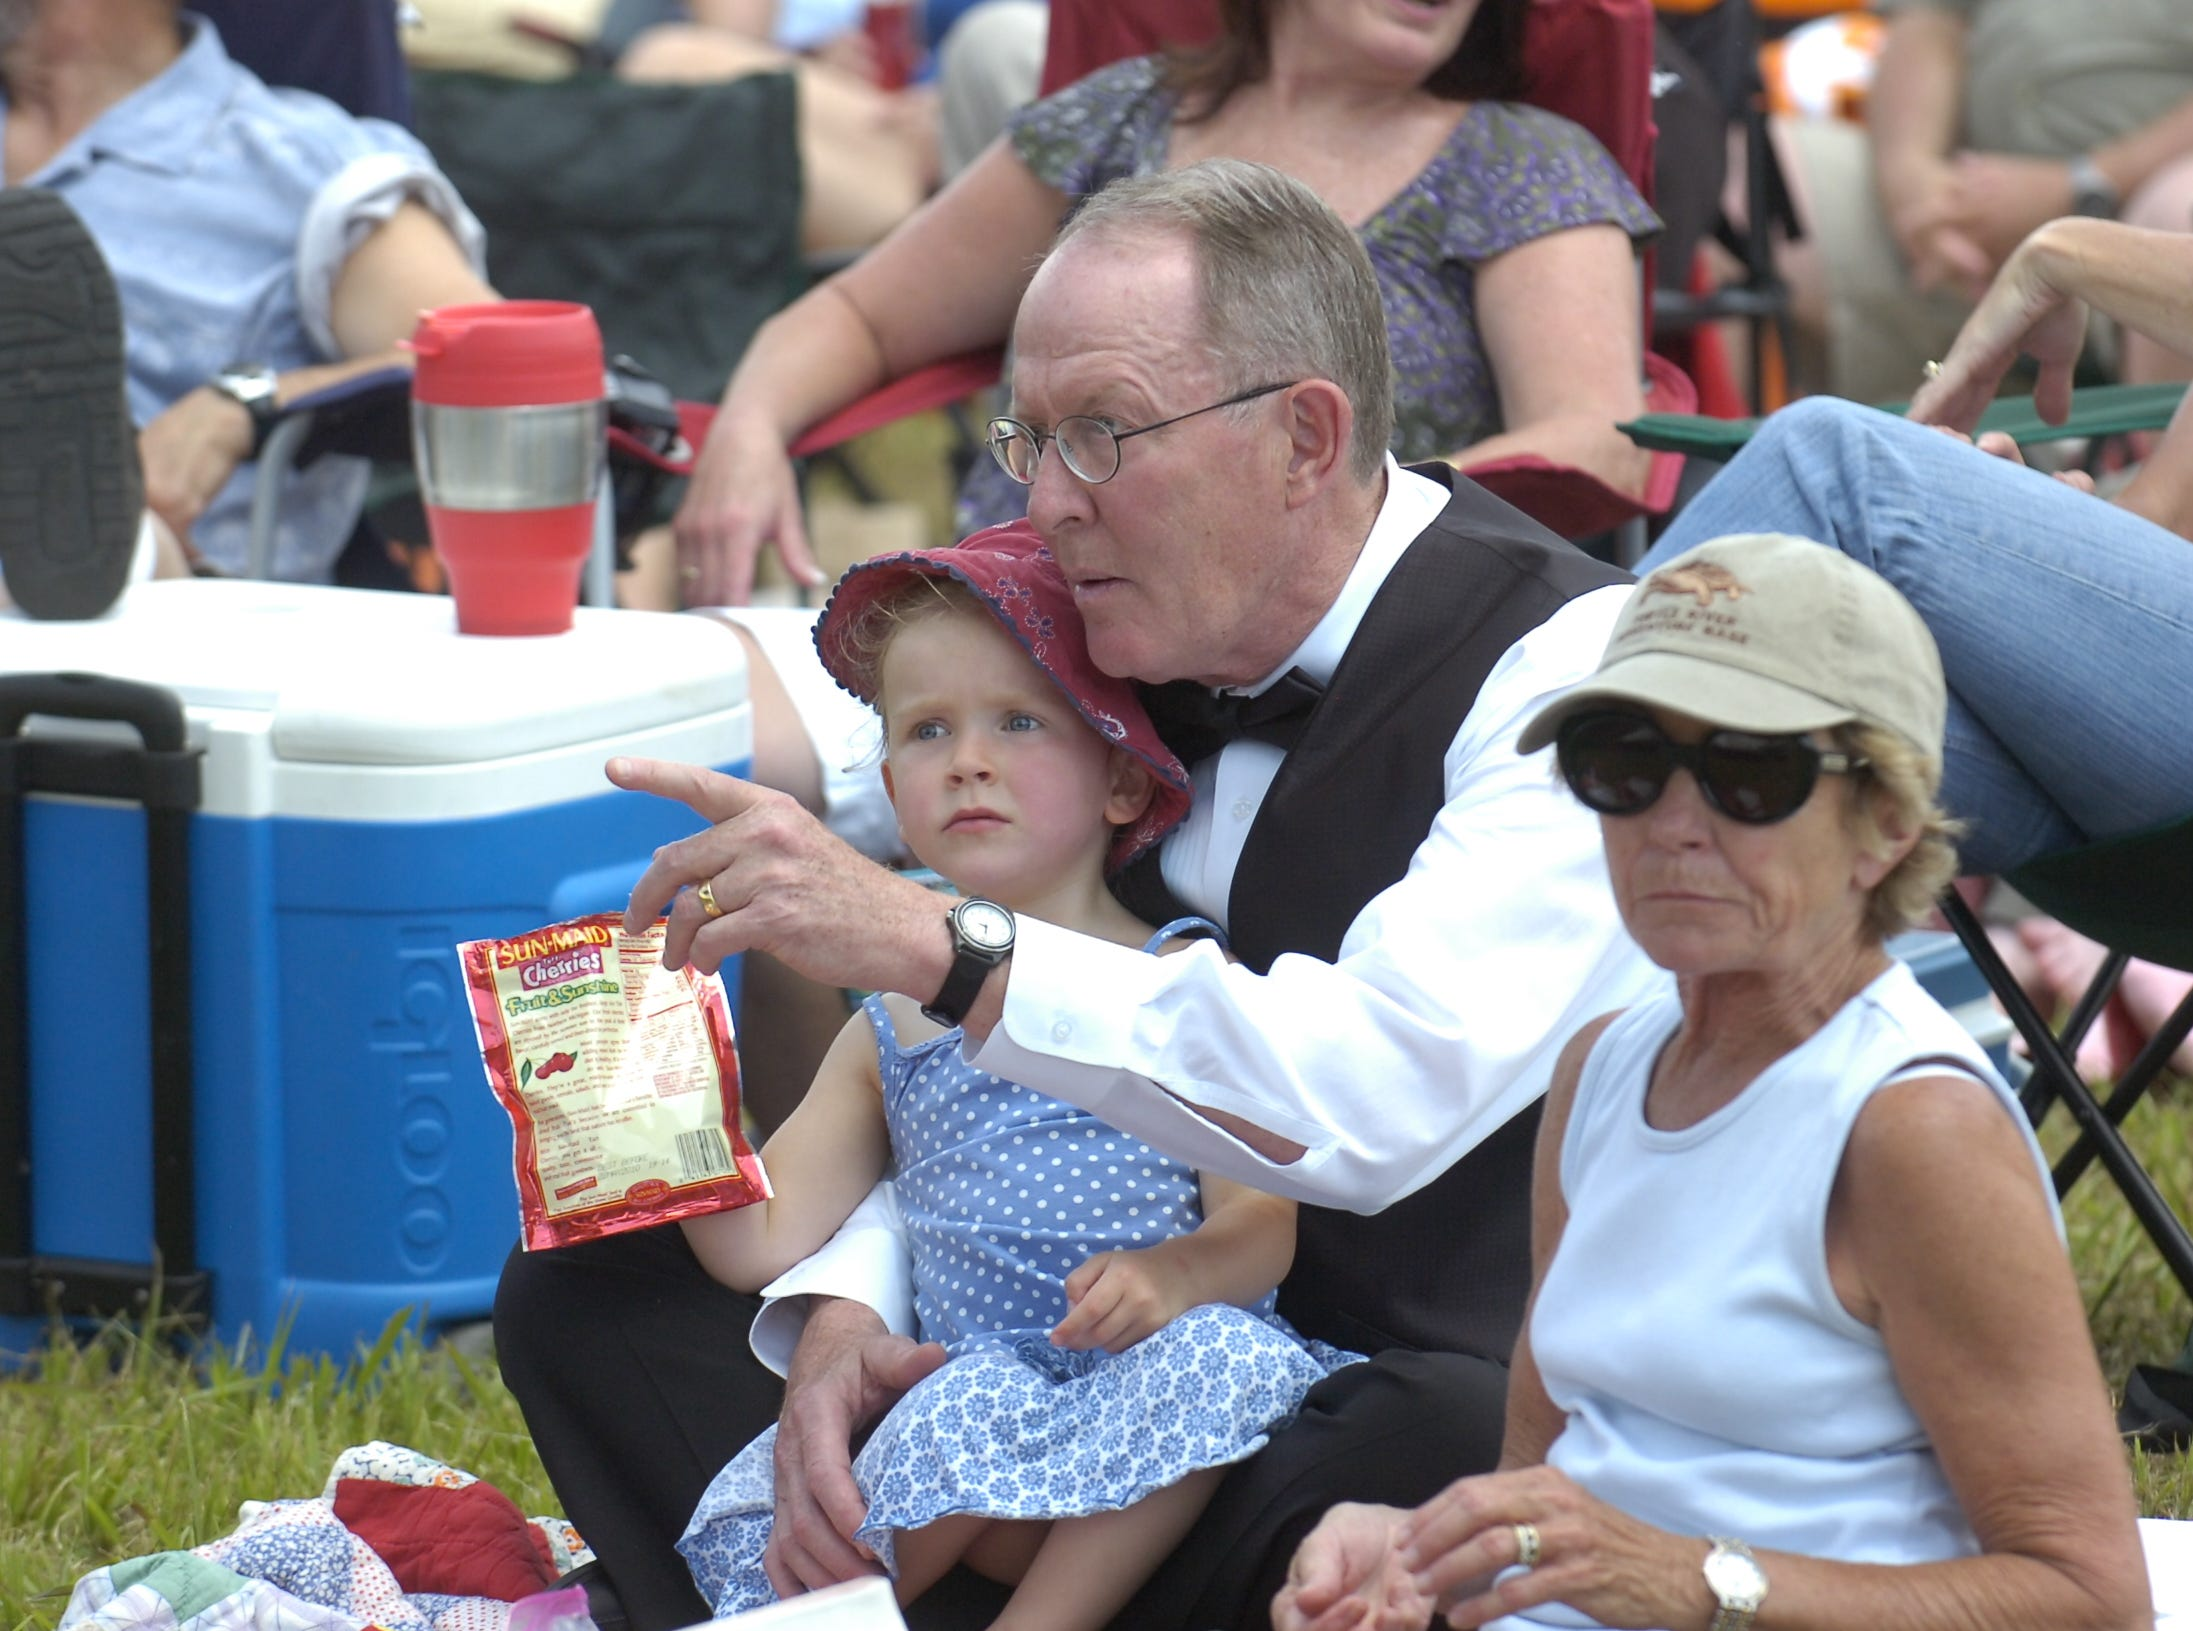 Senator Lamar Alexander sits with his granddaughter, three year-old Taylor Irwin, and wife Honey Alexander as they listen during the 75th Anniversary Celebration Concert in Cades Cove featuring the Knoxville Symphony Orchestra and Senator Alexander. The event drew and estimated 5,000 concertgoers to the cove on Saturday afternoon.